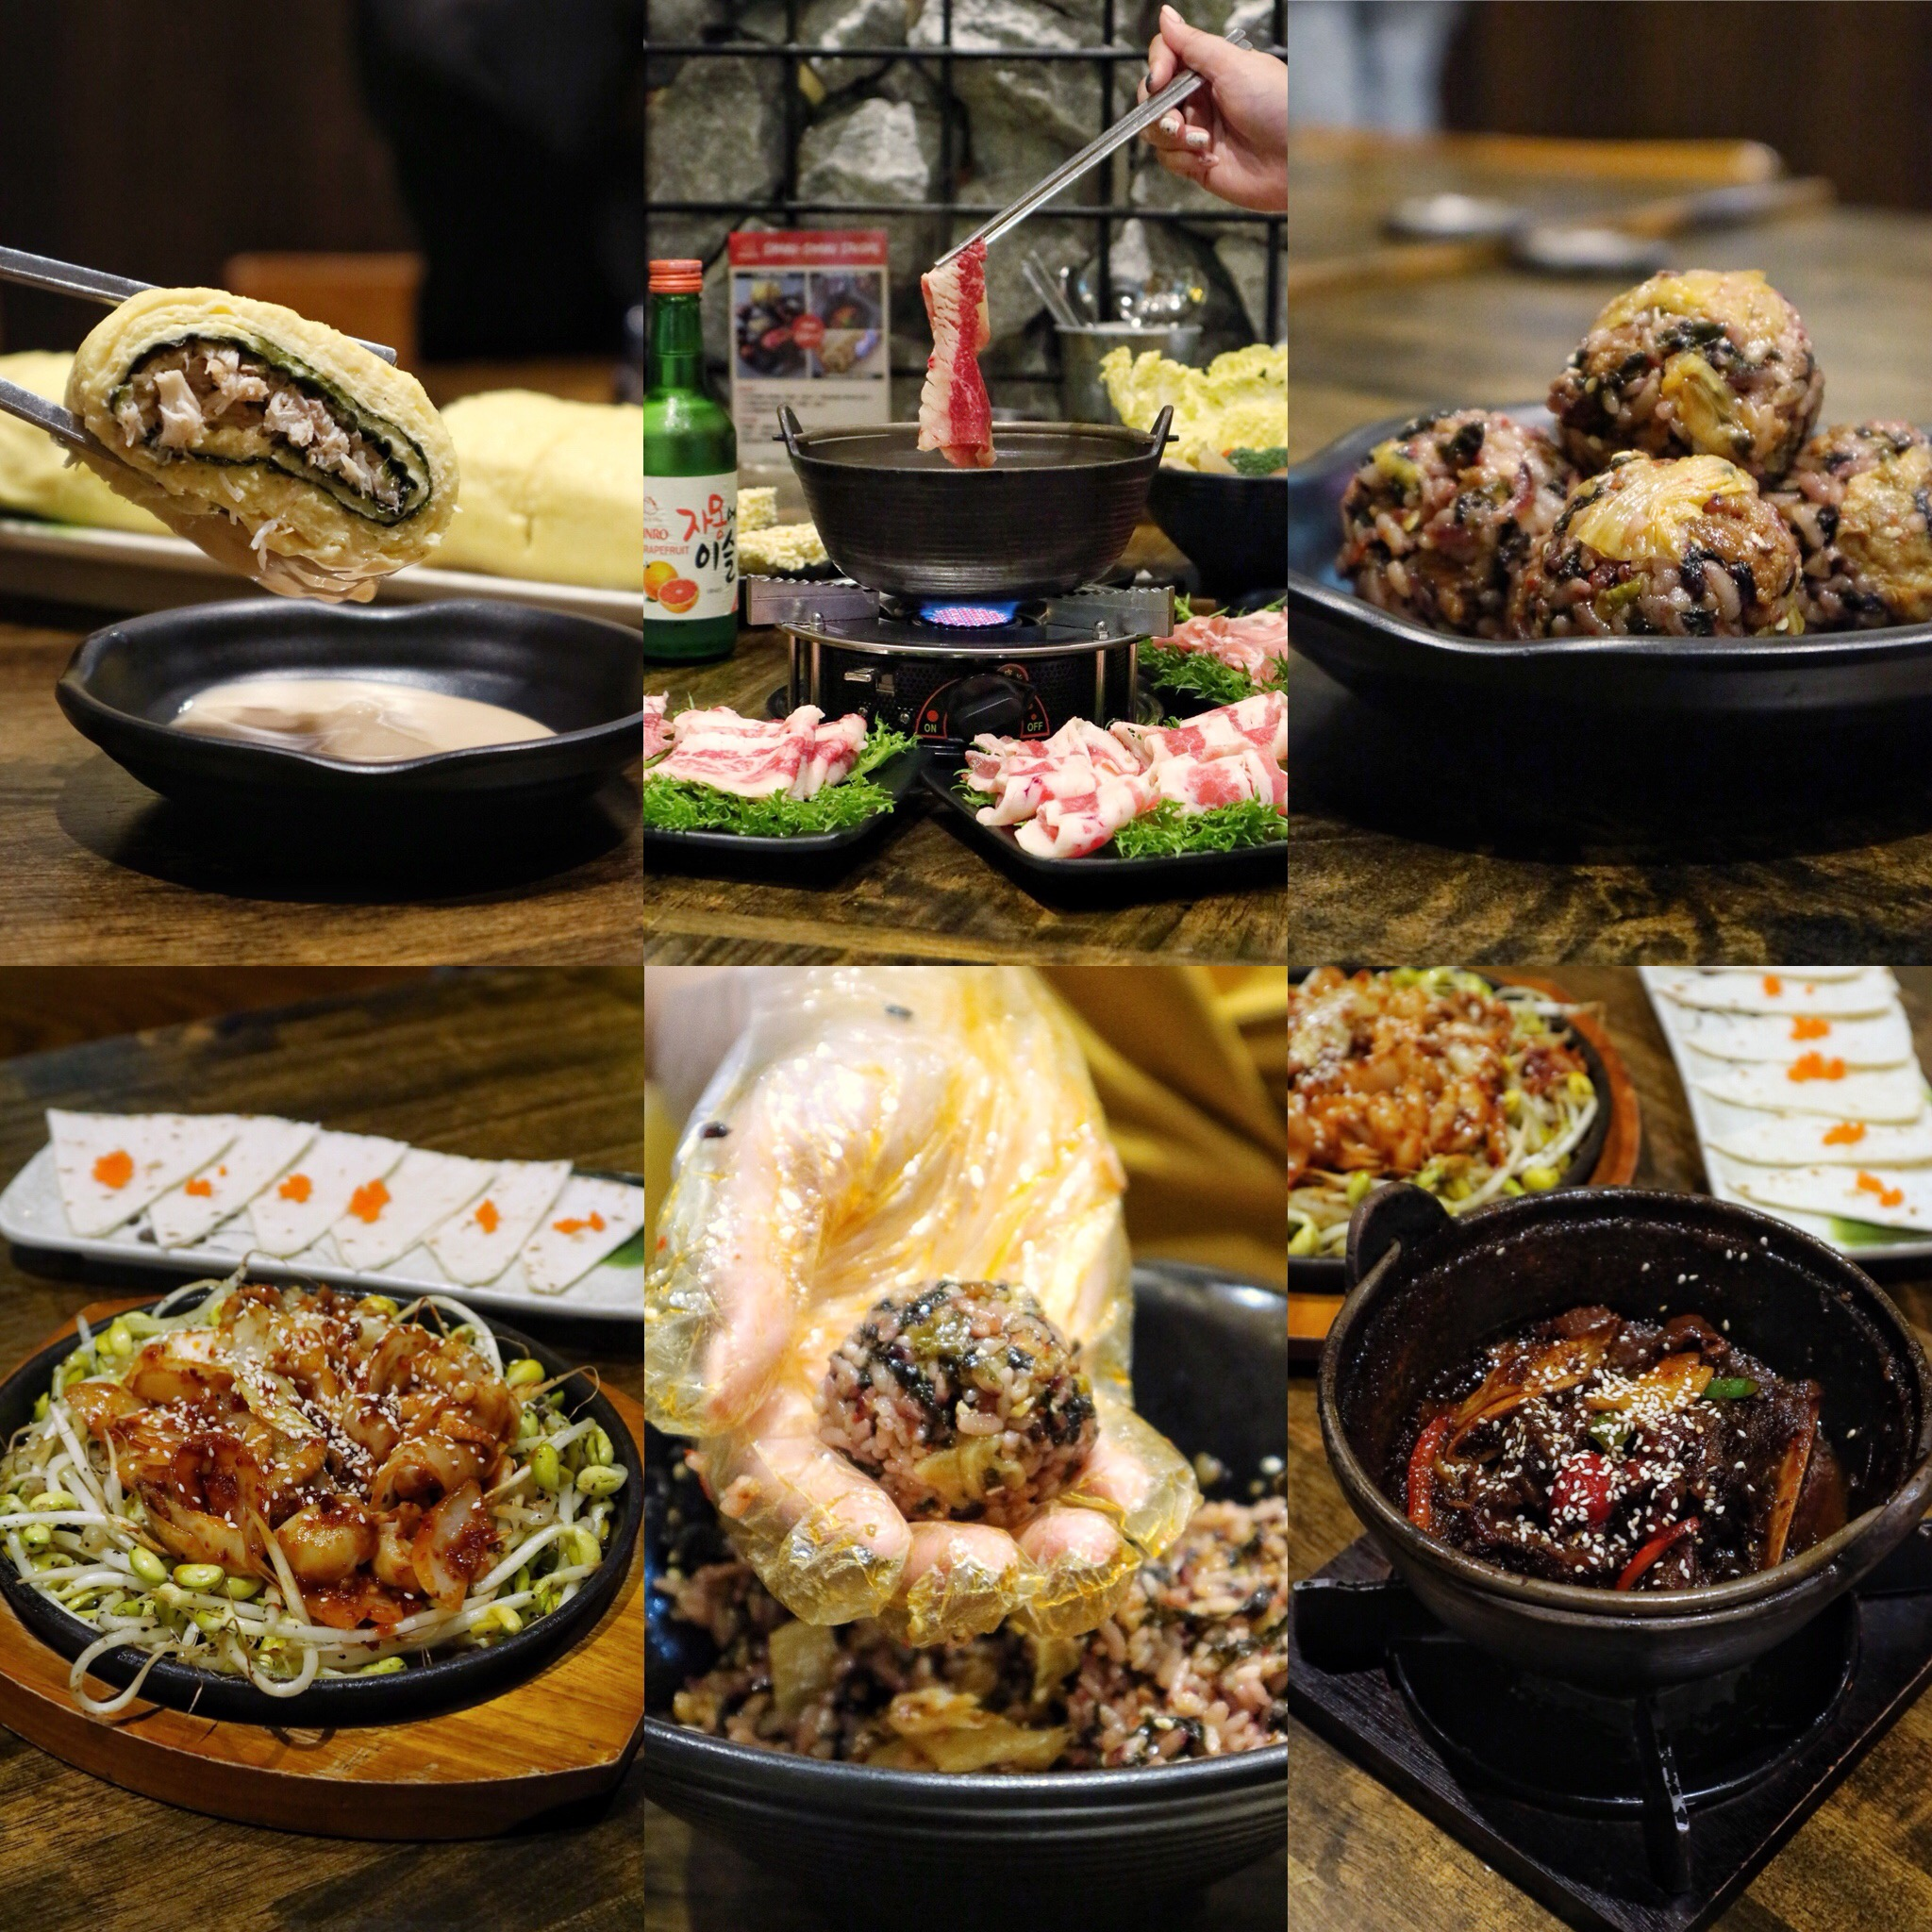 Masizzim: Unveils Brand New Menu with Exciting Dishes such as Shabu-Shabu, Crabmeat Egg Roll, Bulgogi Rice Balls and many more!